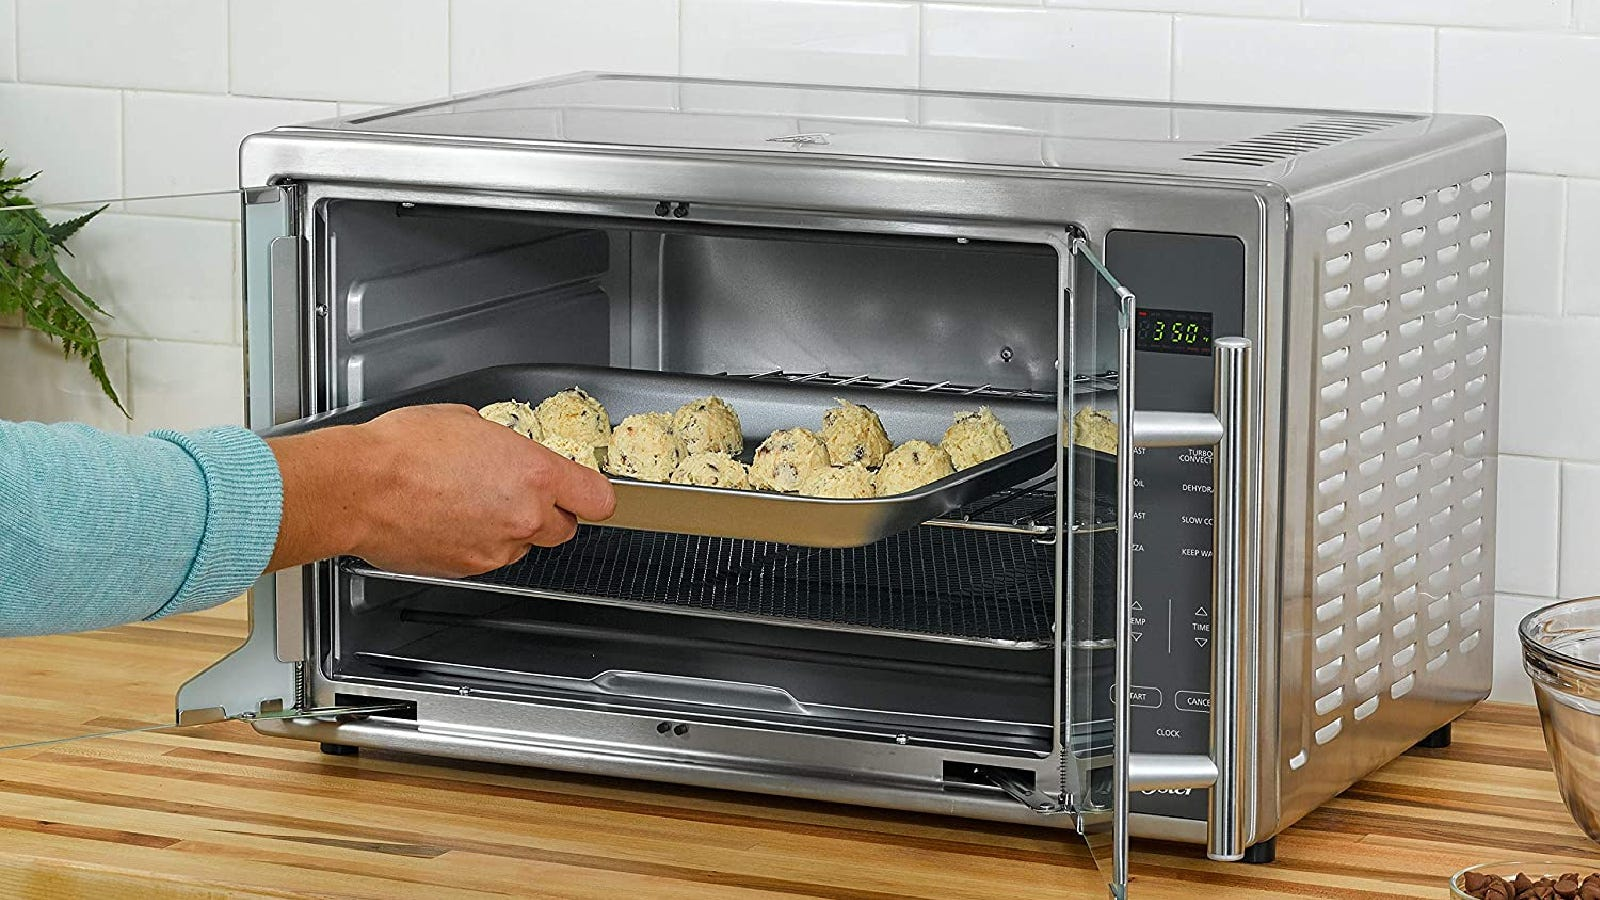 A person putting a tray of cookie dough inside a toaster oven.